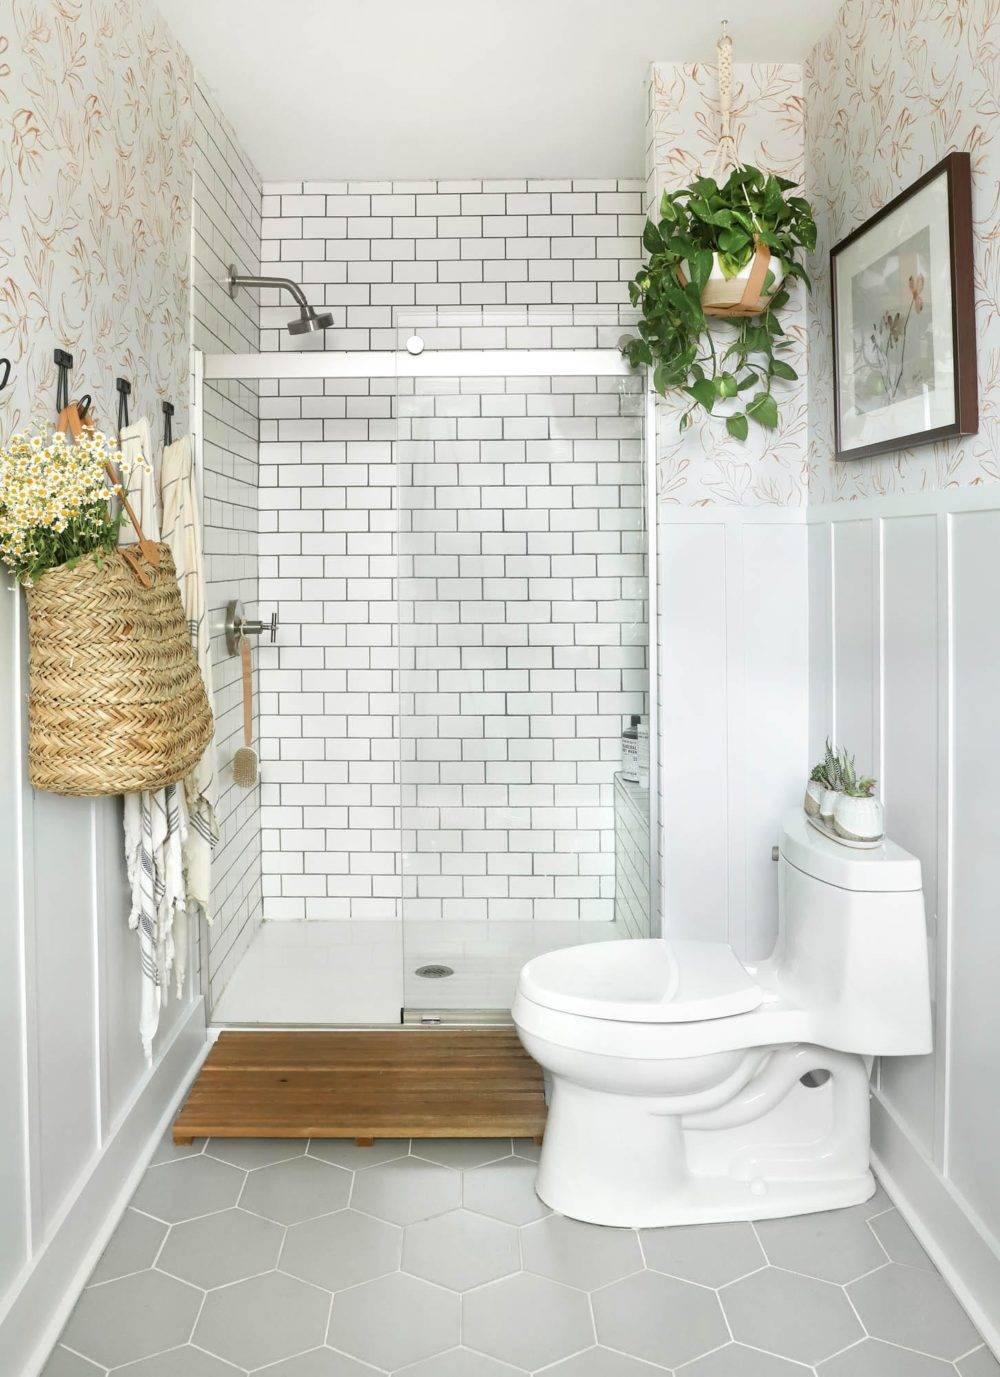 Bright white and grey tiled bathroom